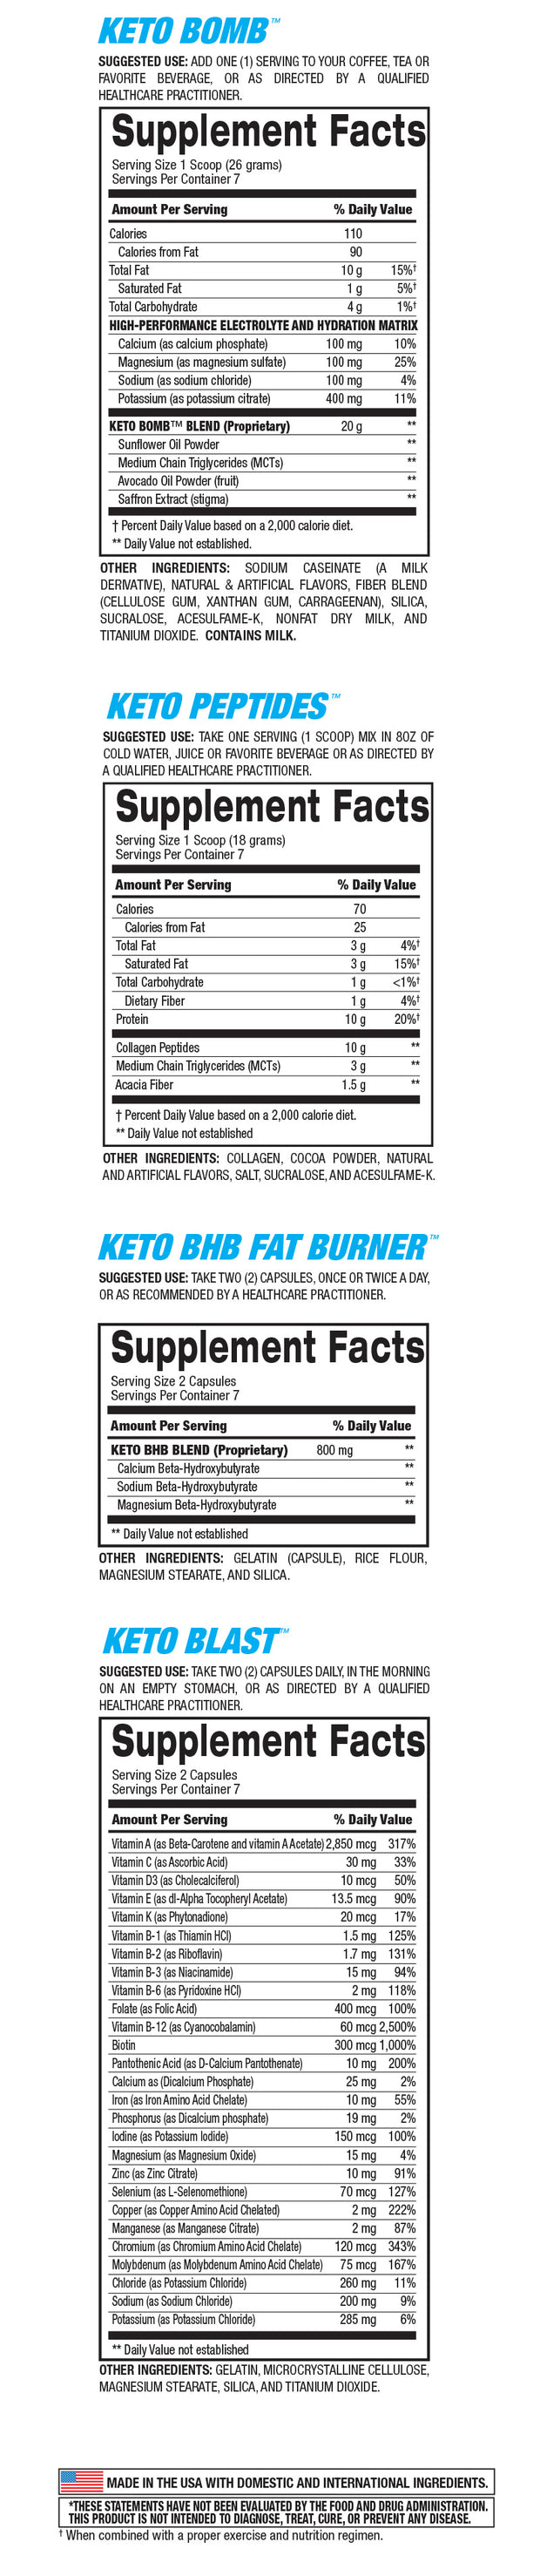 7-Day Keto Diet Starter Kit